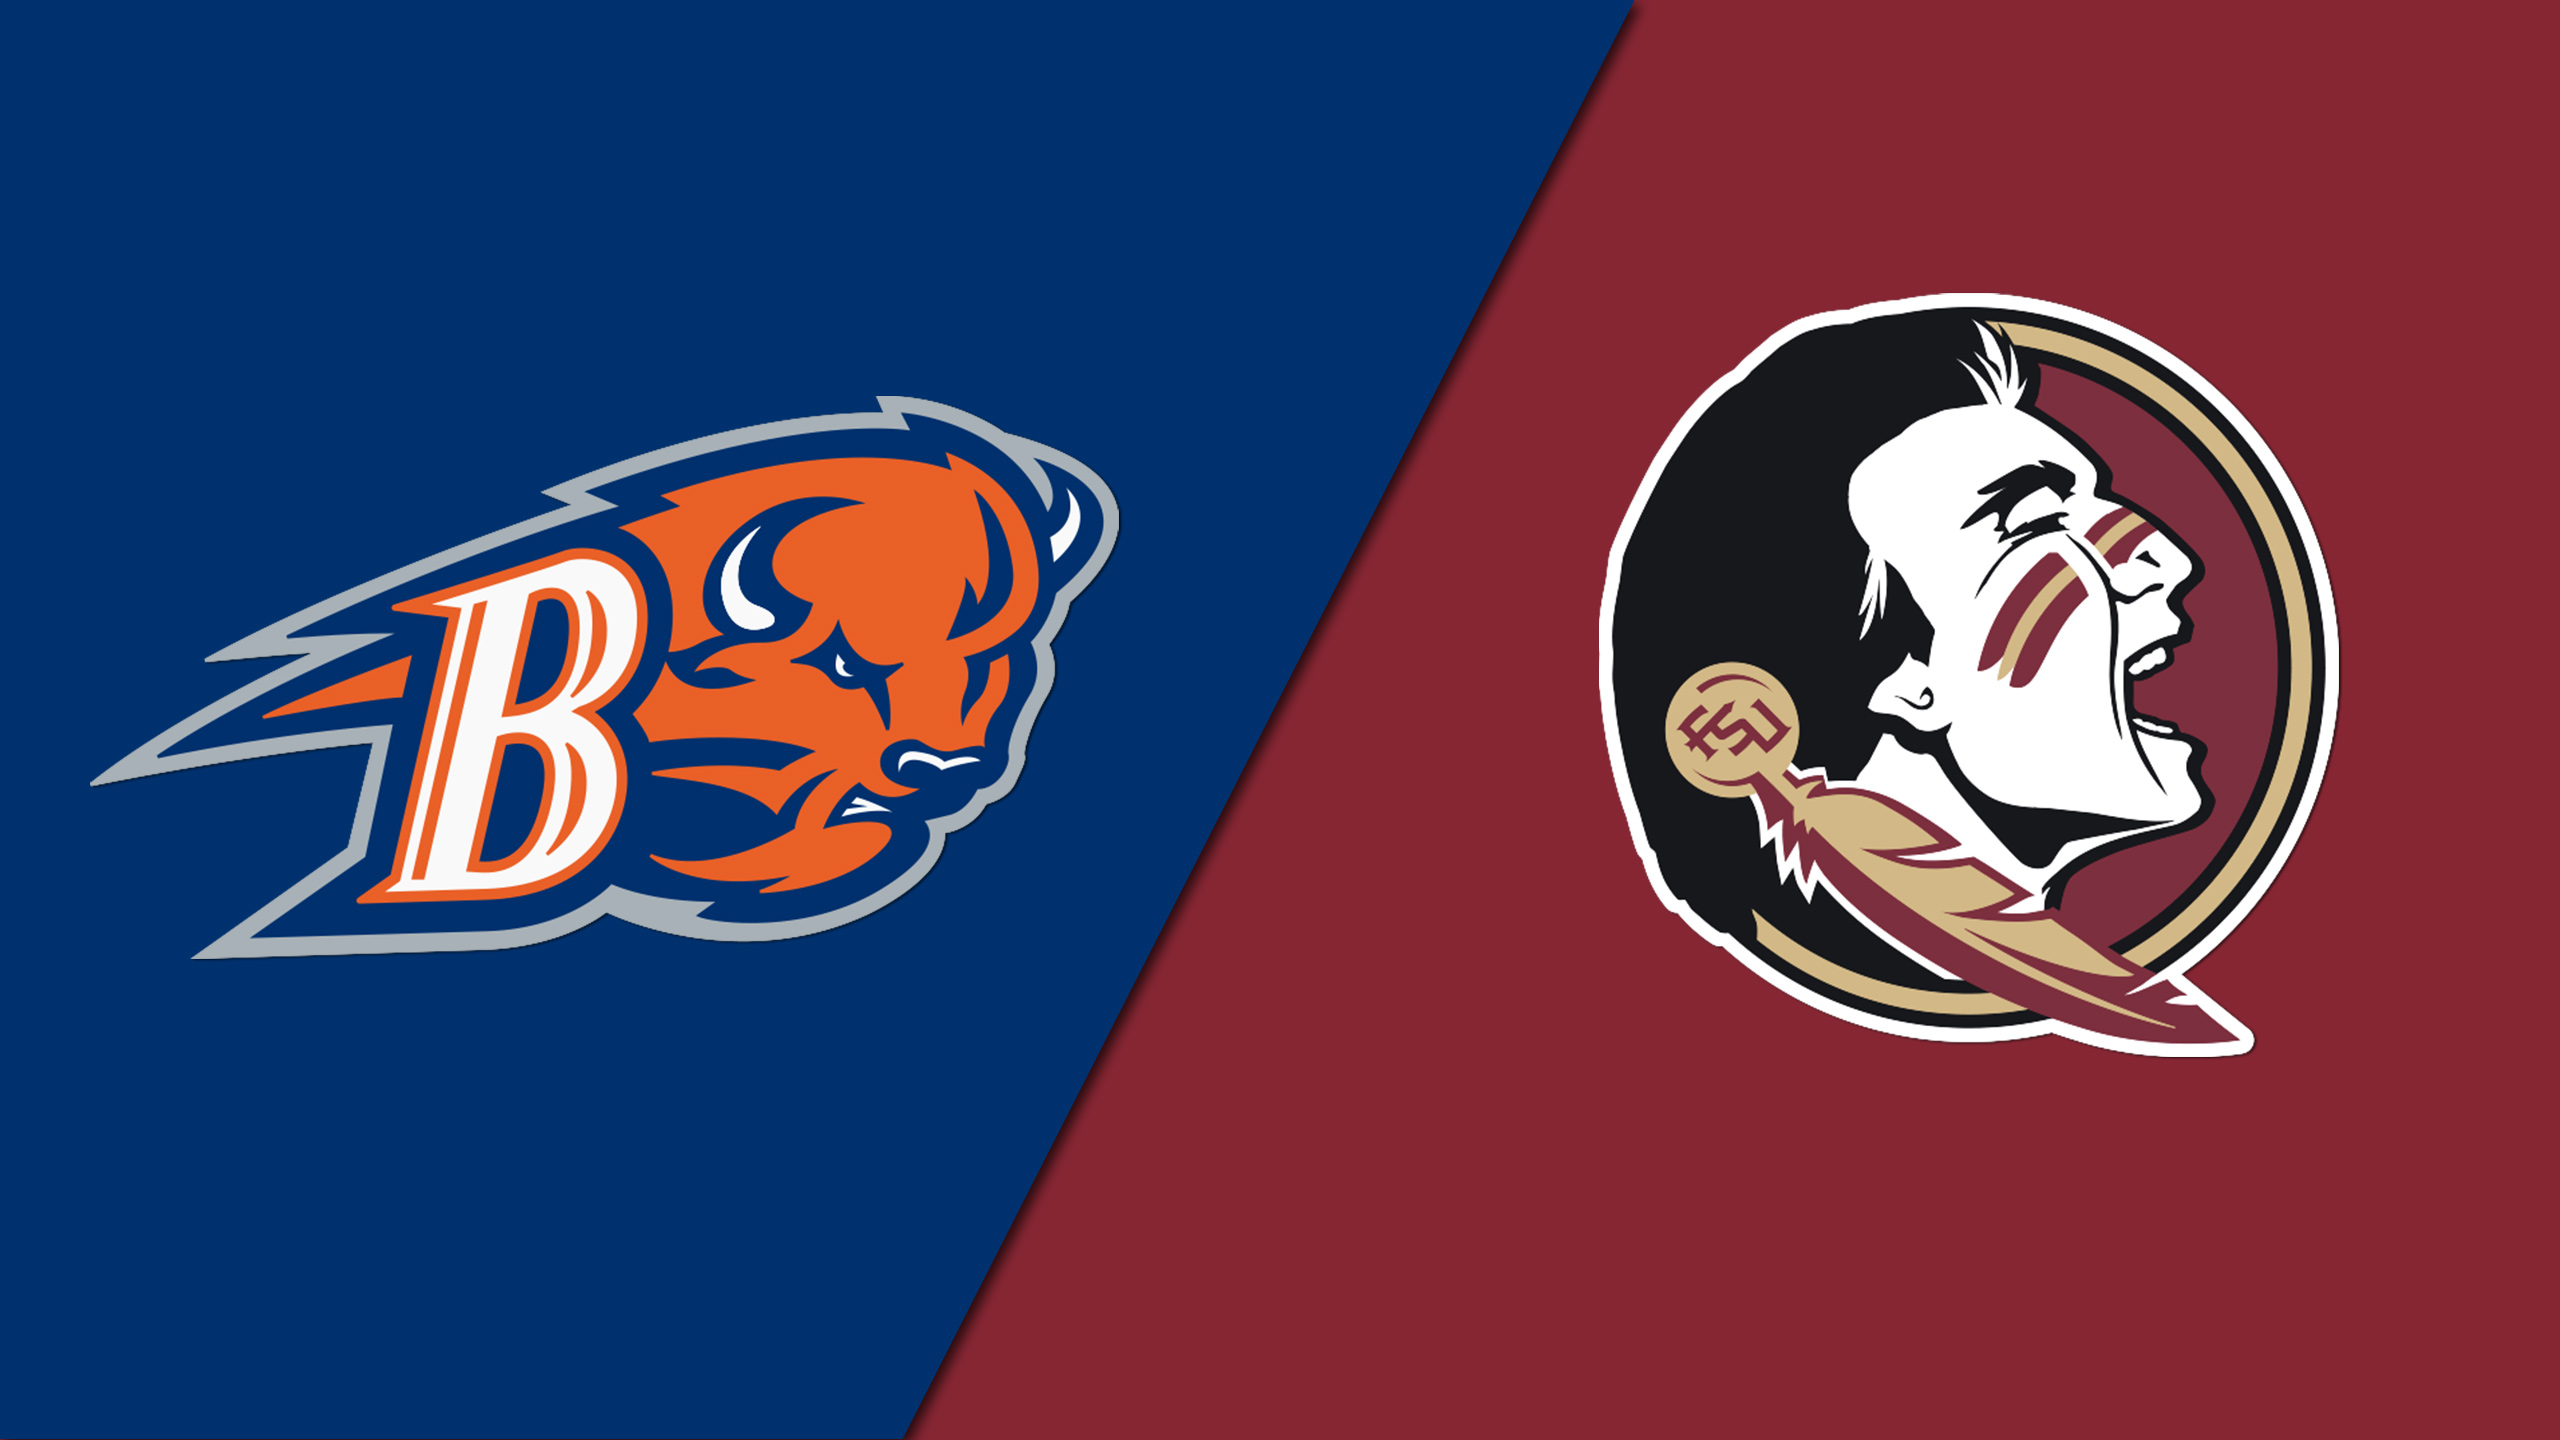 #12 Bucknell vs. #5 Florida State (First Round) (NCAA Women's Basketball Championship)